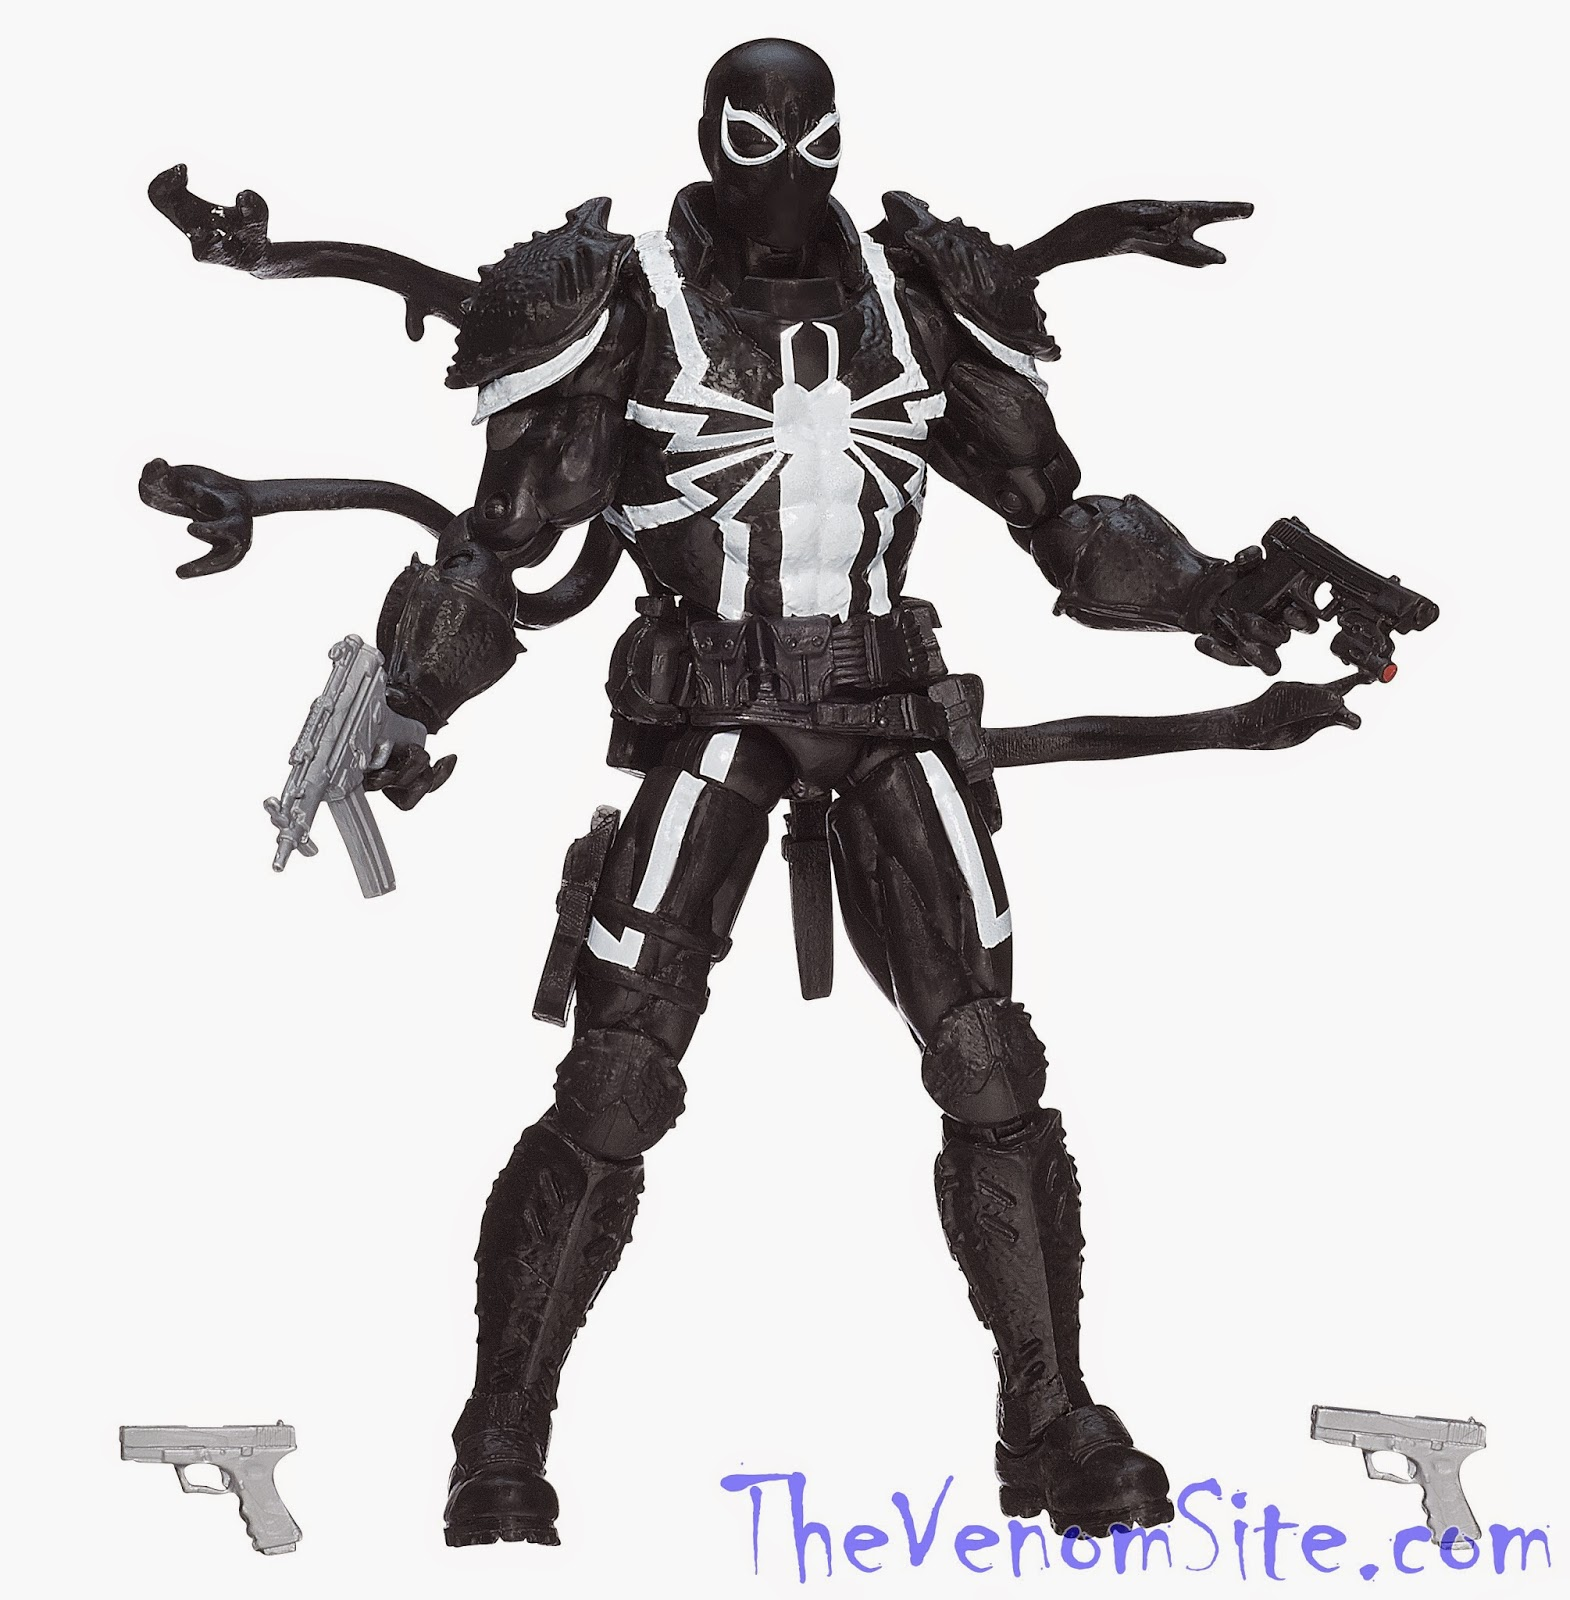 Add the Walgreens exclusive Marvel Legends Infinite Agent Venom action figure to your Christmas list